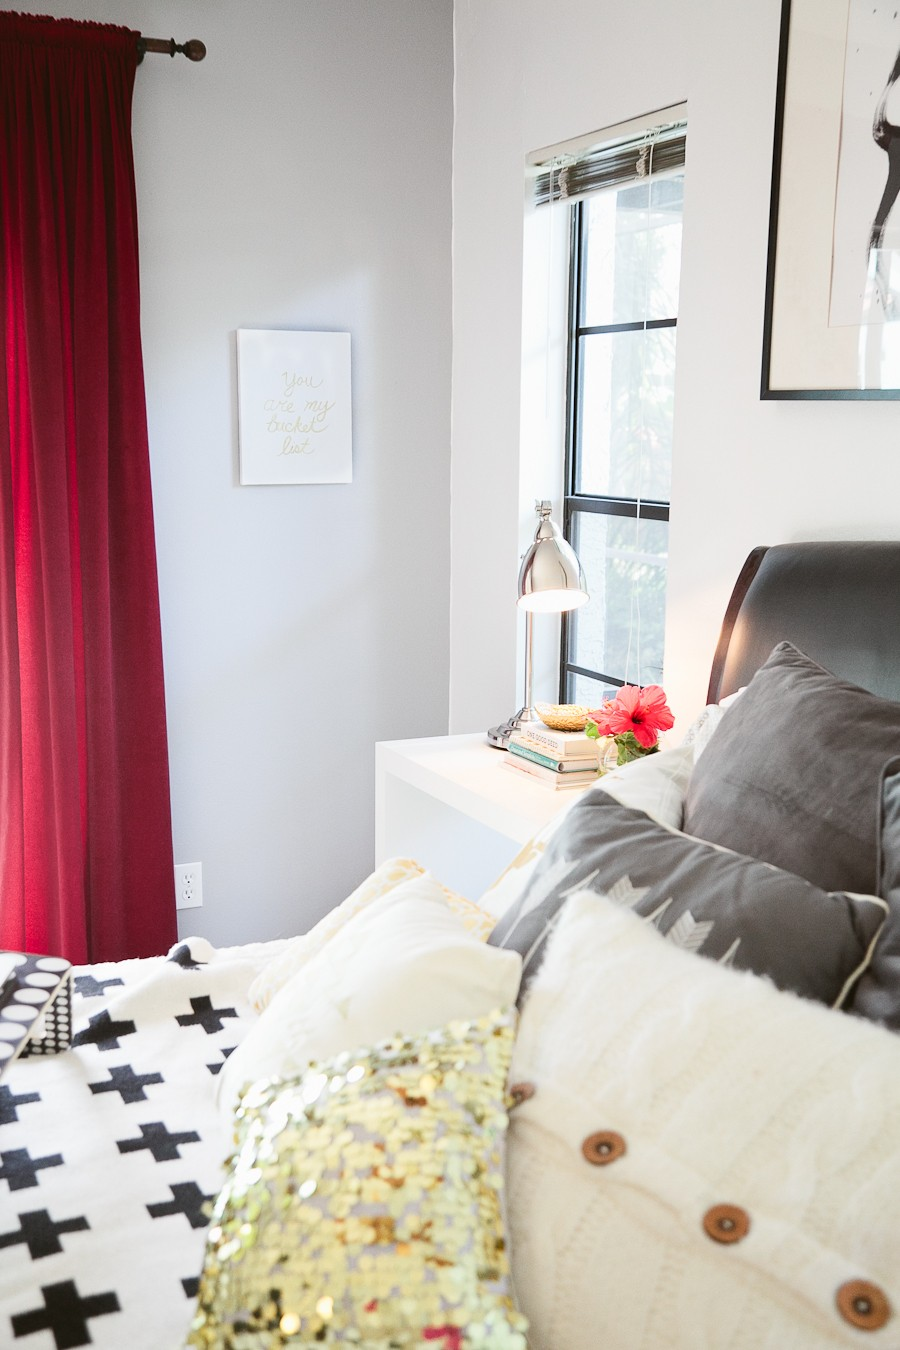 5 Tips to Cozy Up a Rental Space | Bedroom Makeover on Fresh Mommy Blog-17